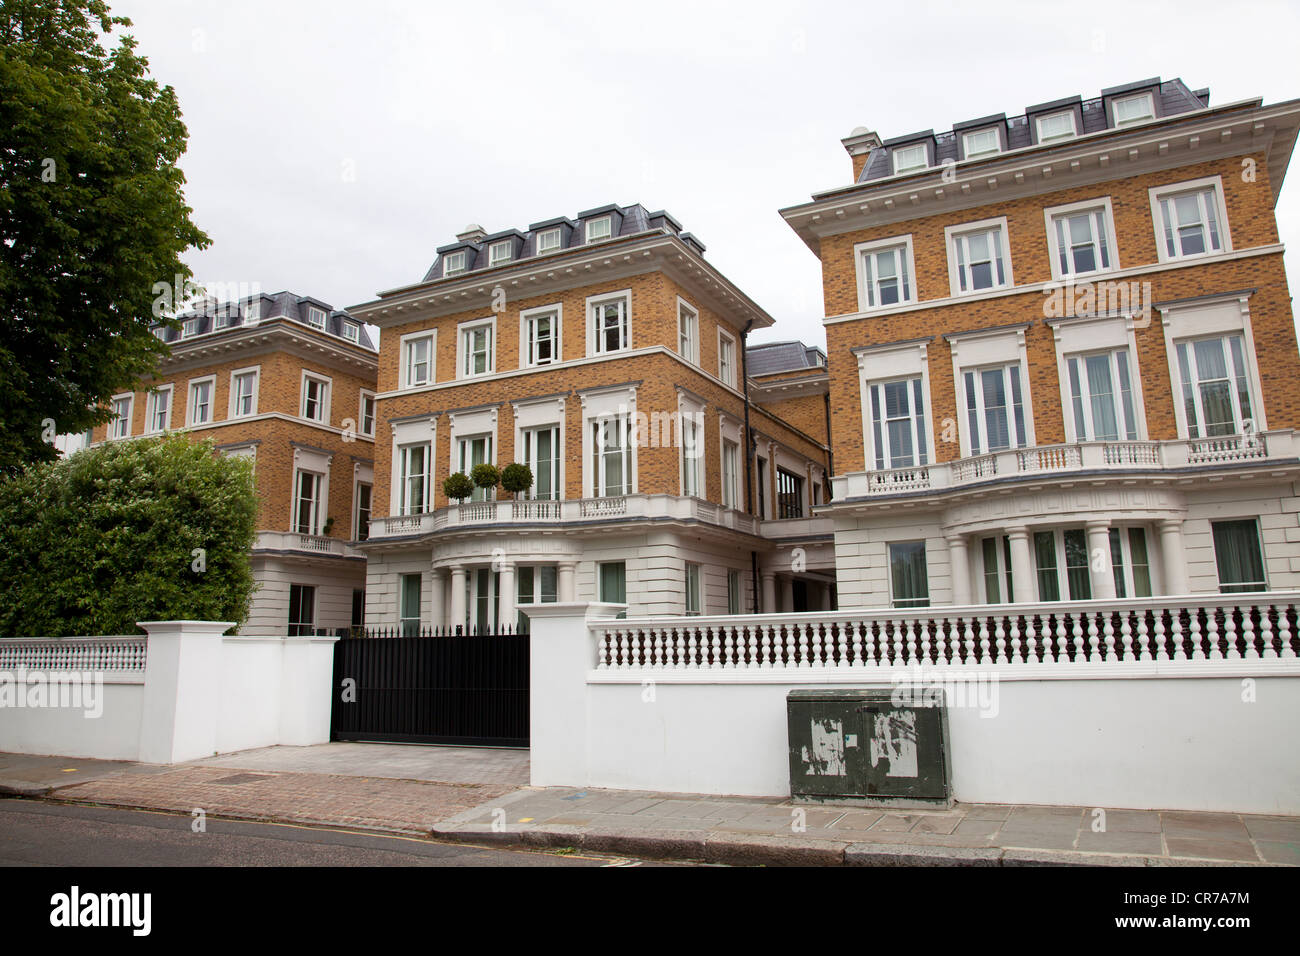 Large Houses In The Boltons In London Uk Stock Photo